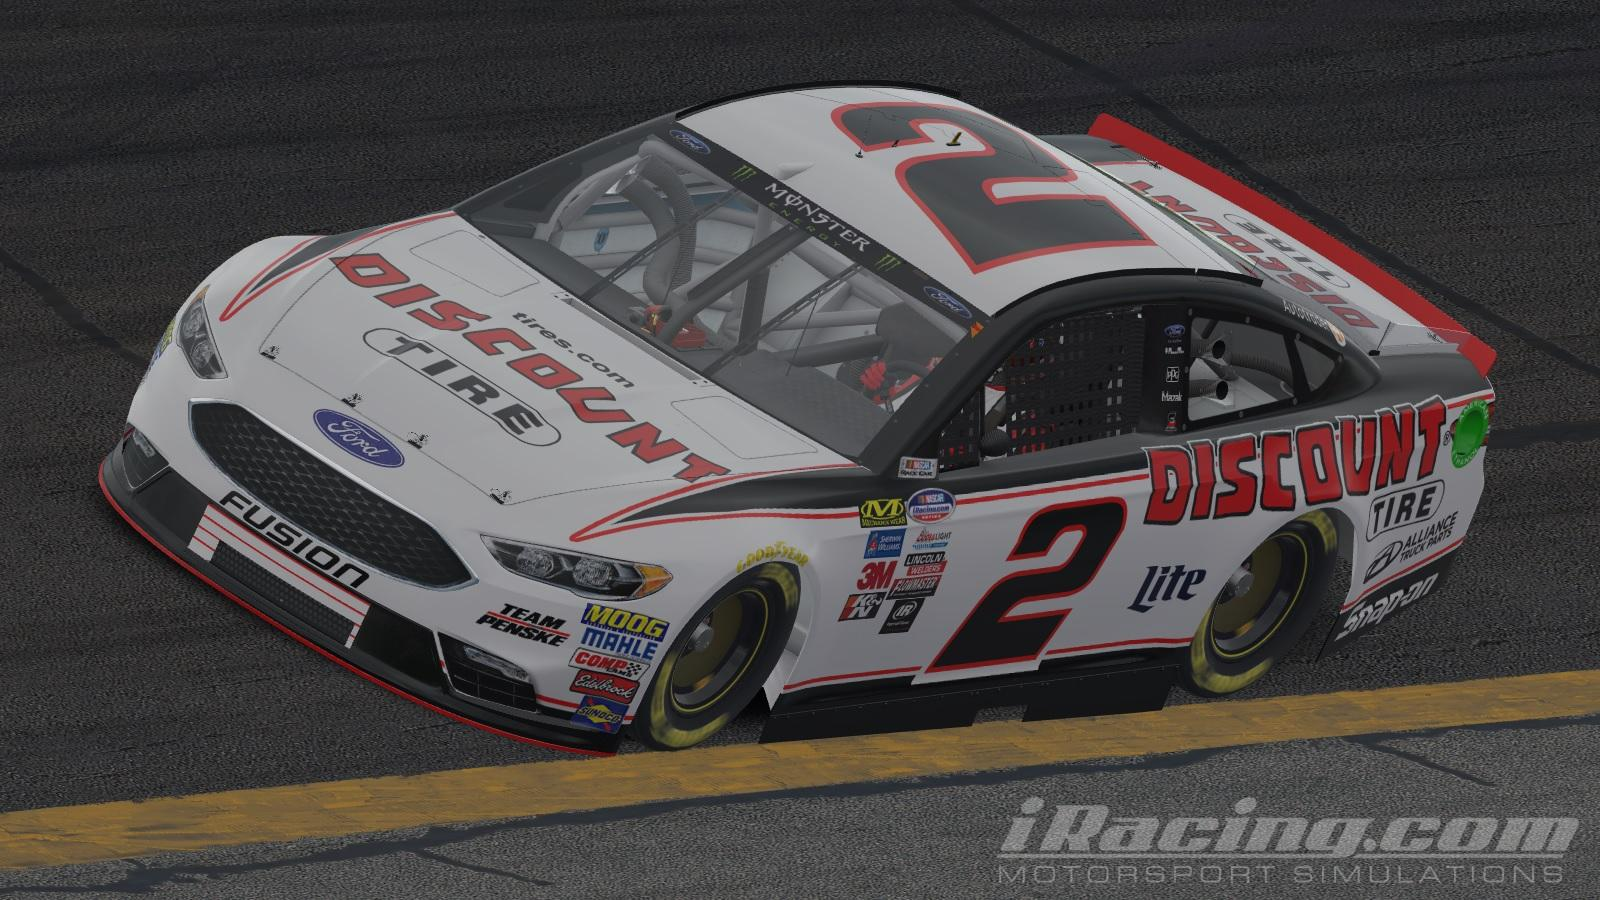 Preview of Brad Keselowski 2018 Discount Tire by Will Norton